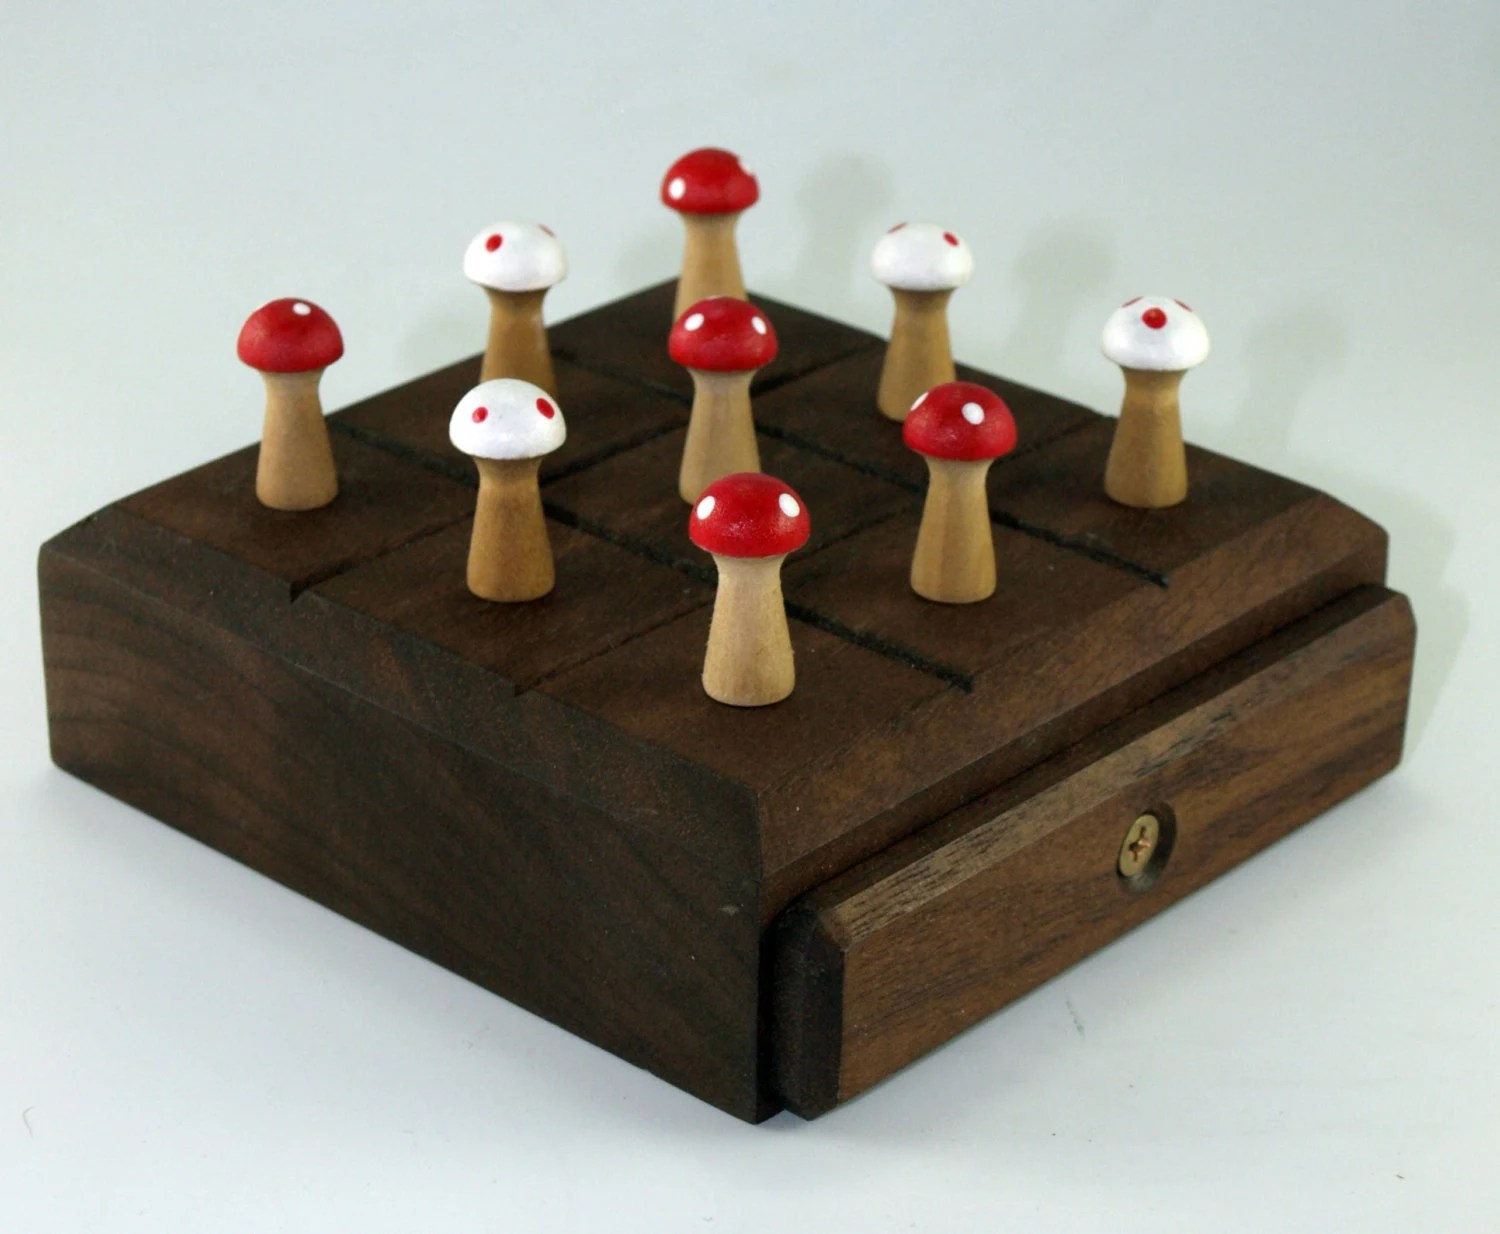 Handcrafted Games Handmade Wooden Tic Tac Toe Game By Craftedartists On Etsy